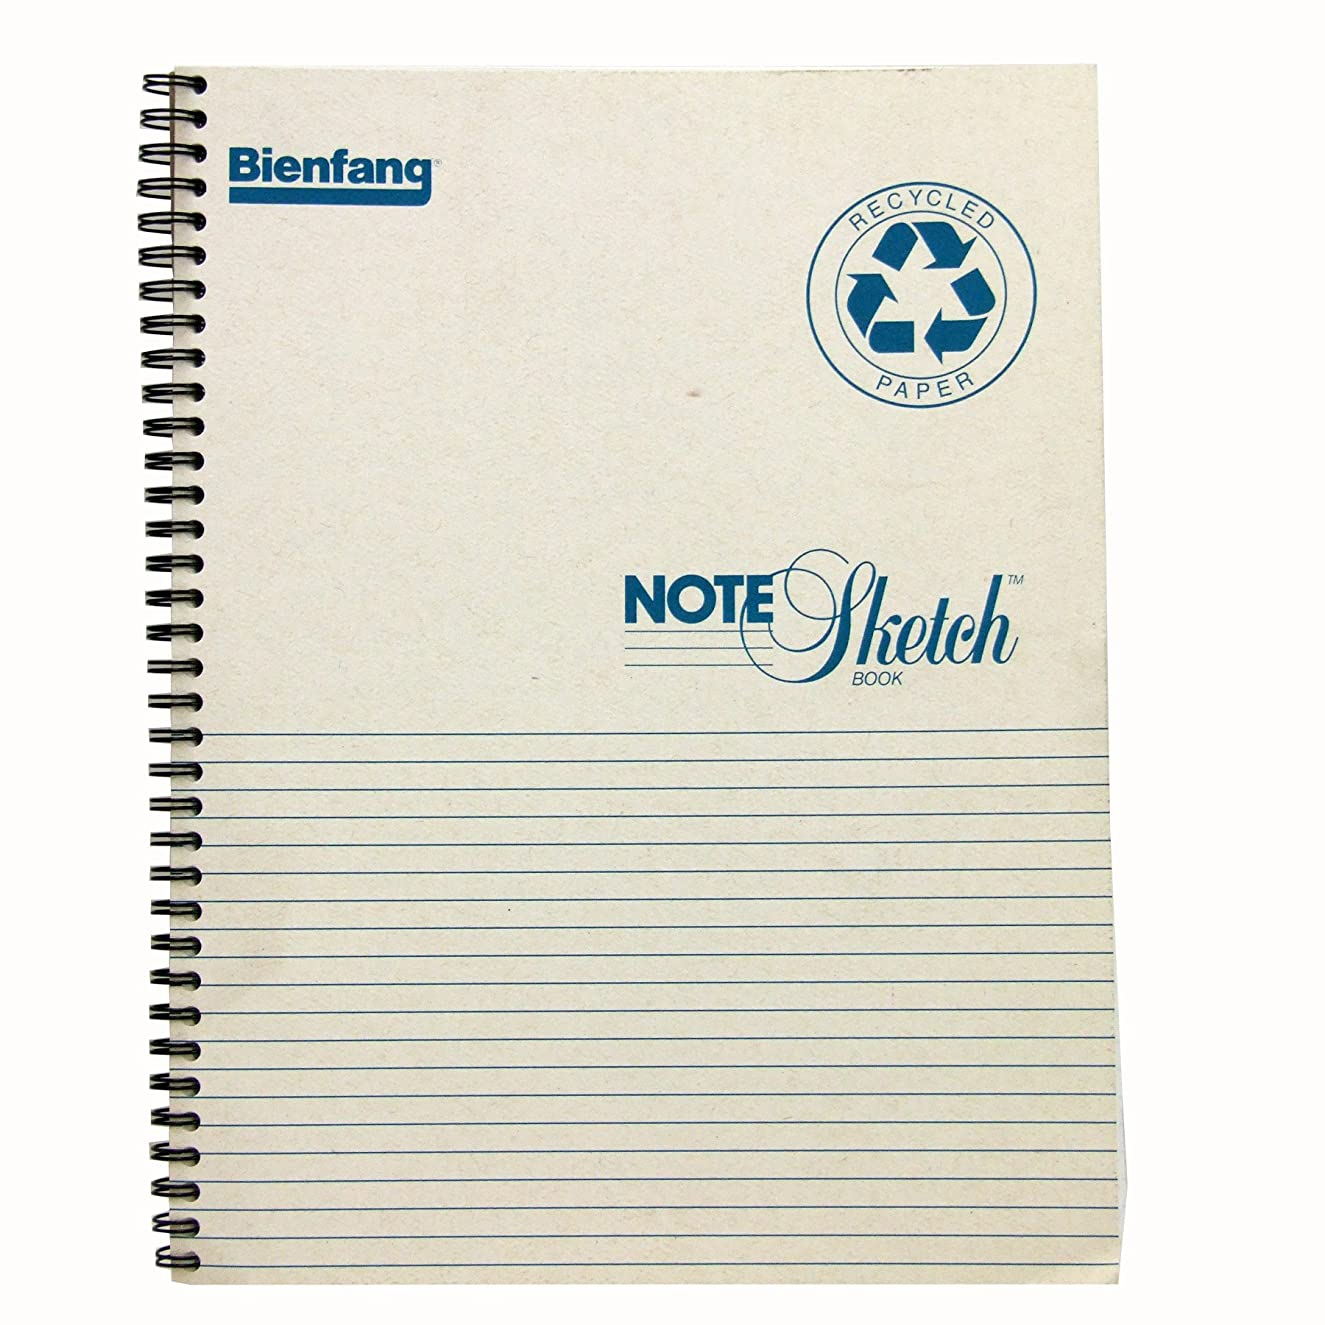 Bienfang 8-1/2 by 11-Inch Notesketch Pad with Horizontal Lines